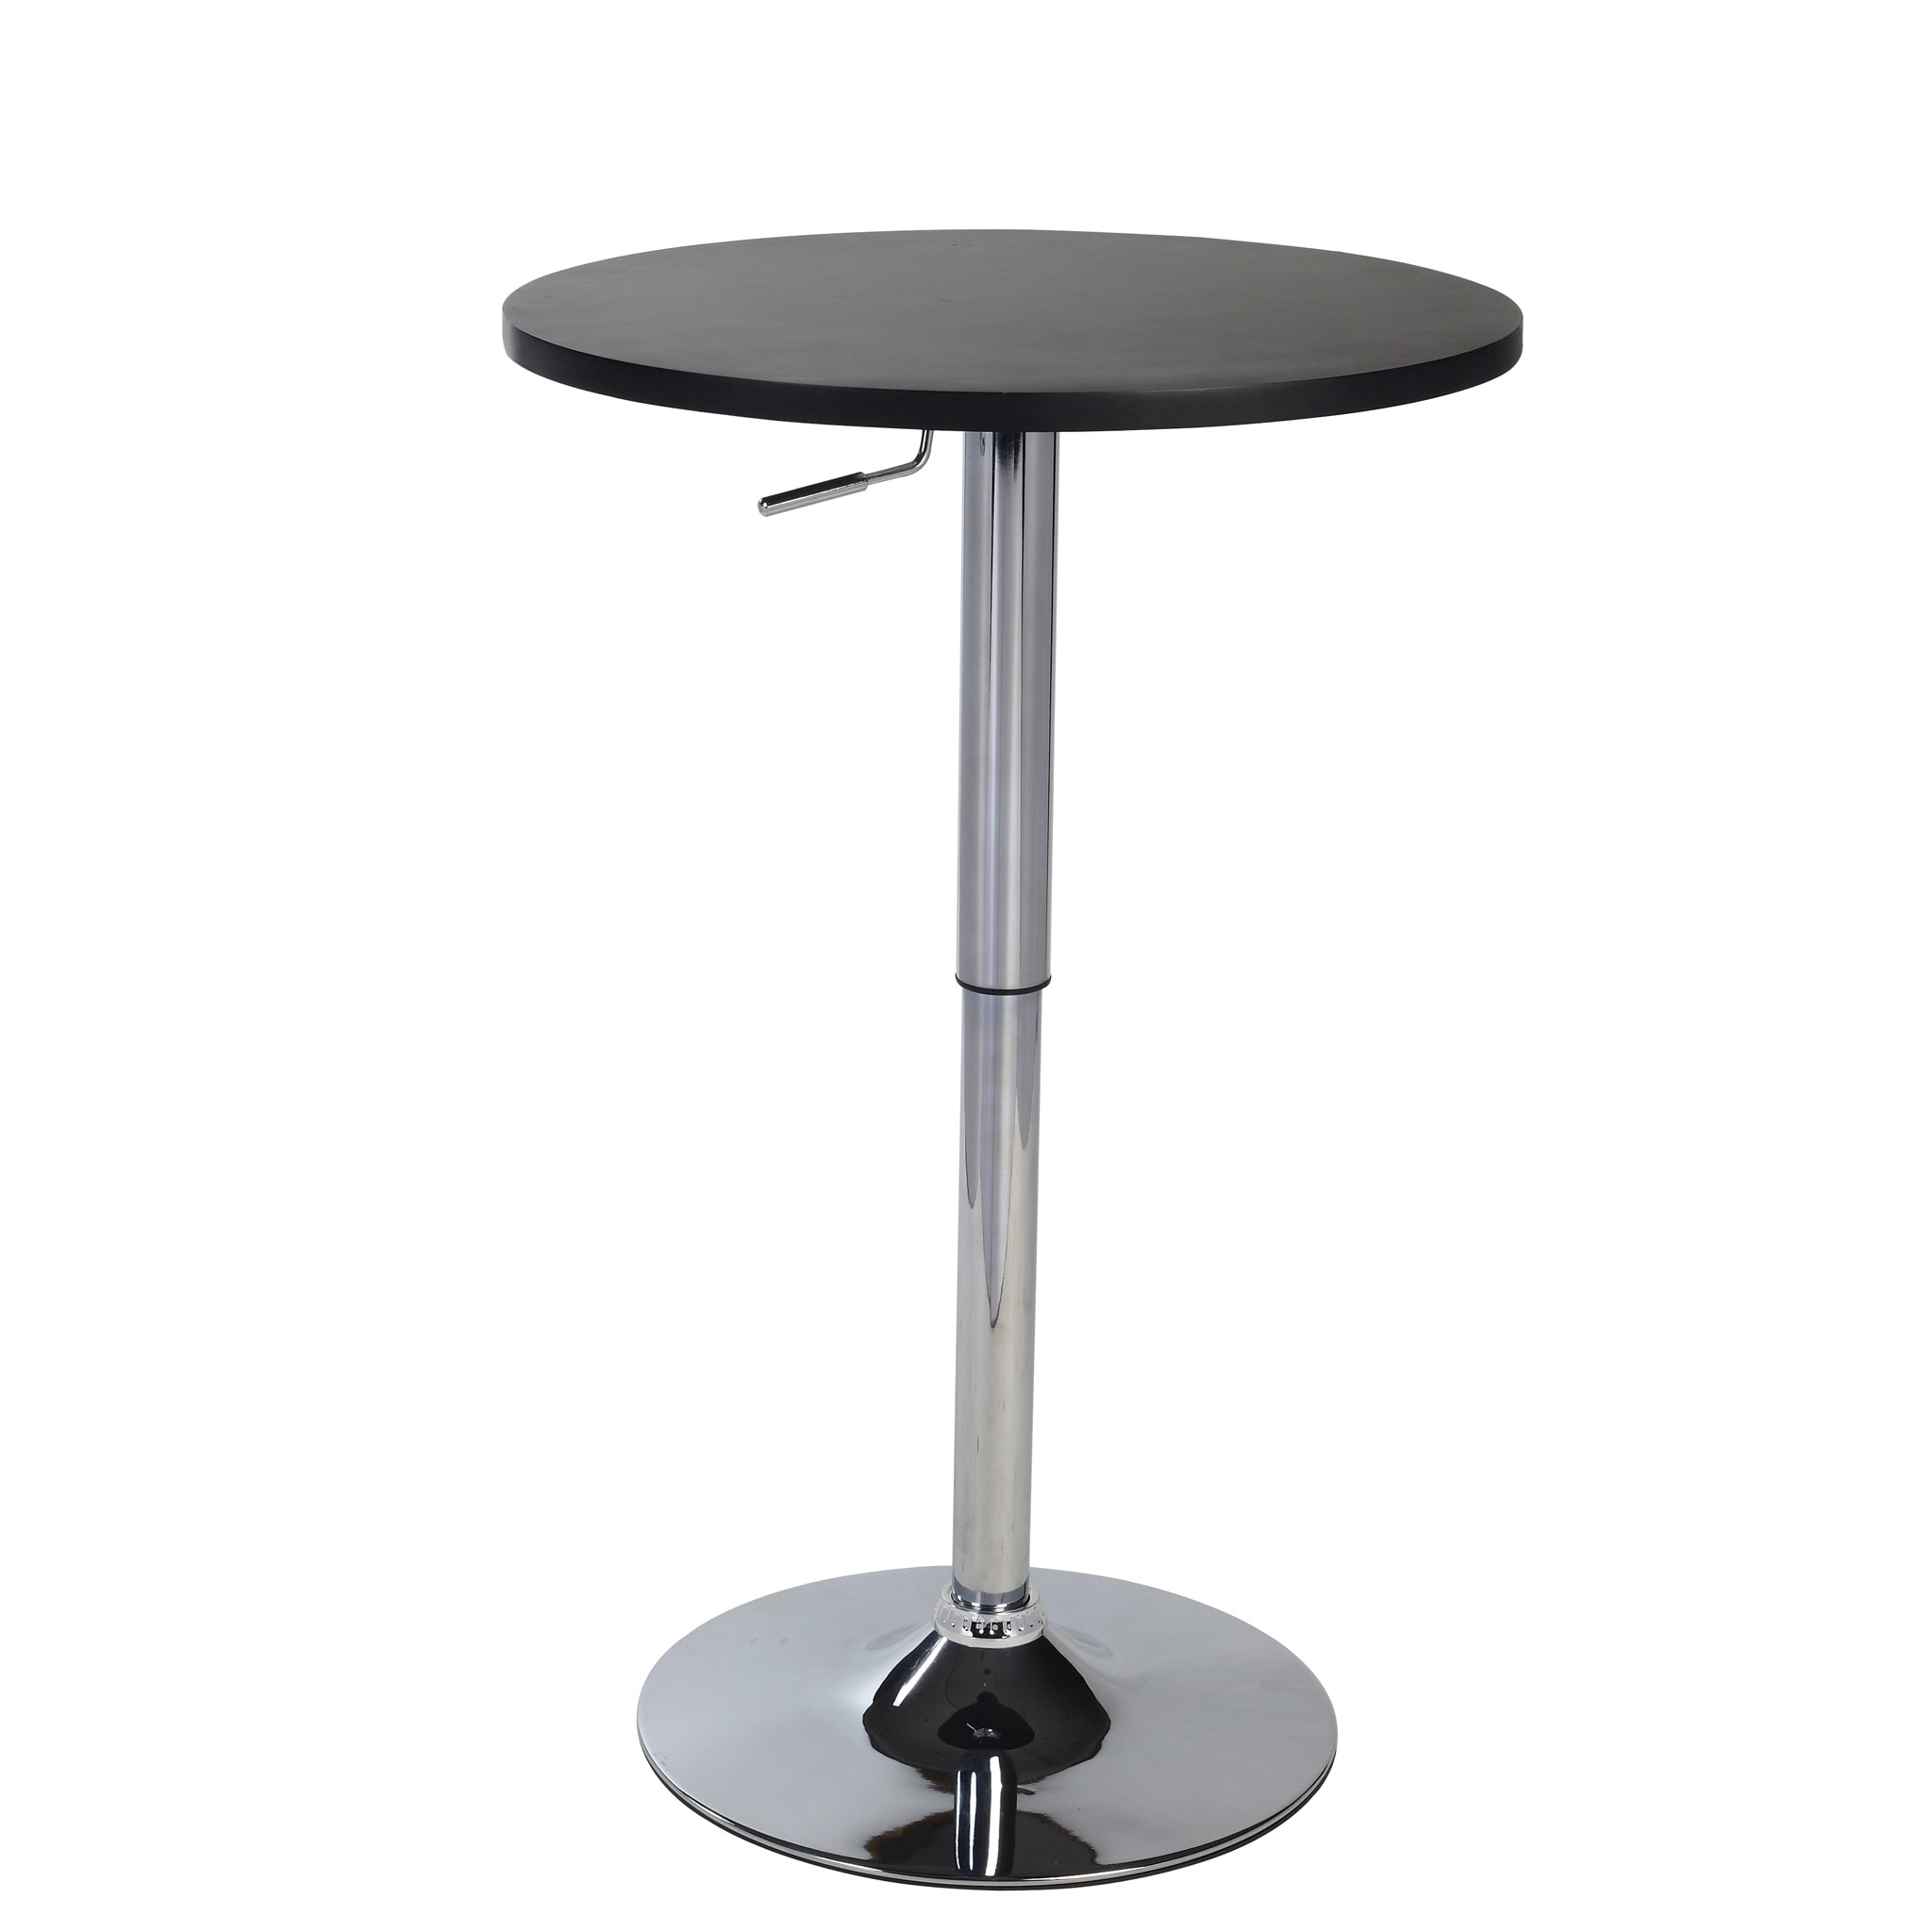 cumar black adjustable height wood and chrome metal bar table  freeshipping today  overstockcom  . cumar black adjustable height wood and chrome metal bar table